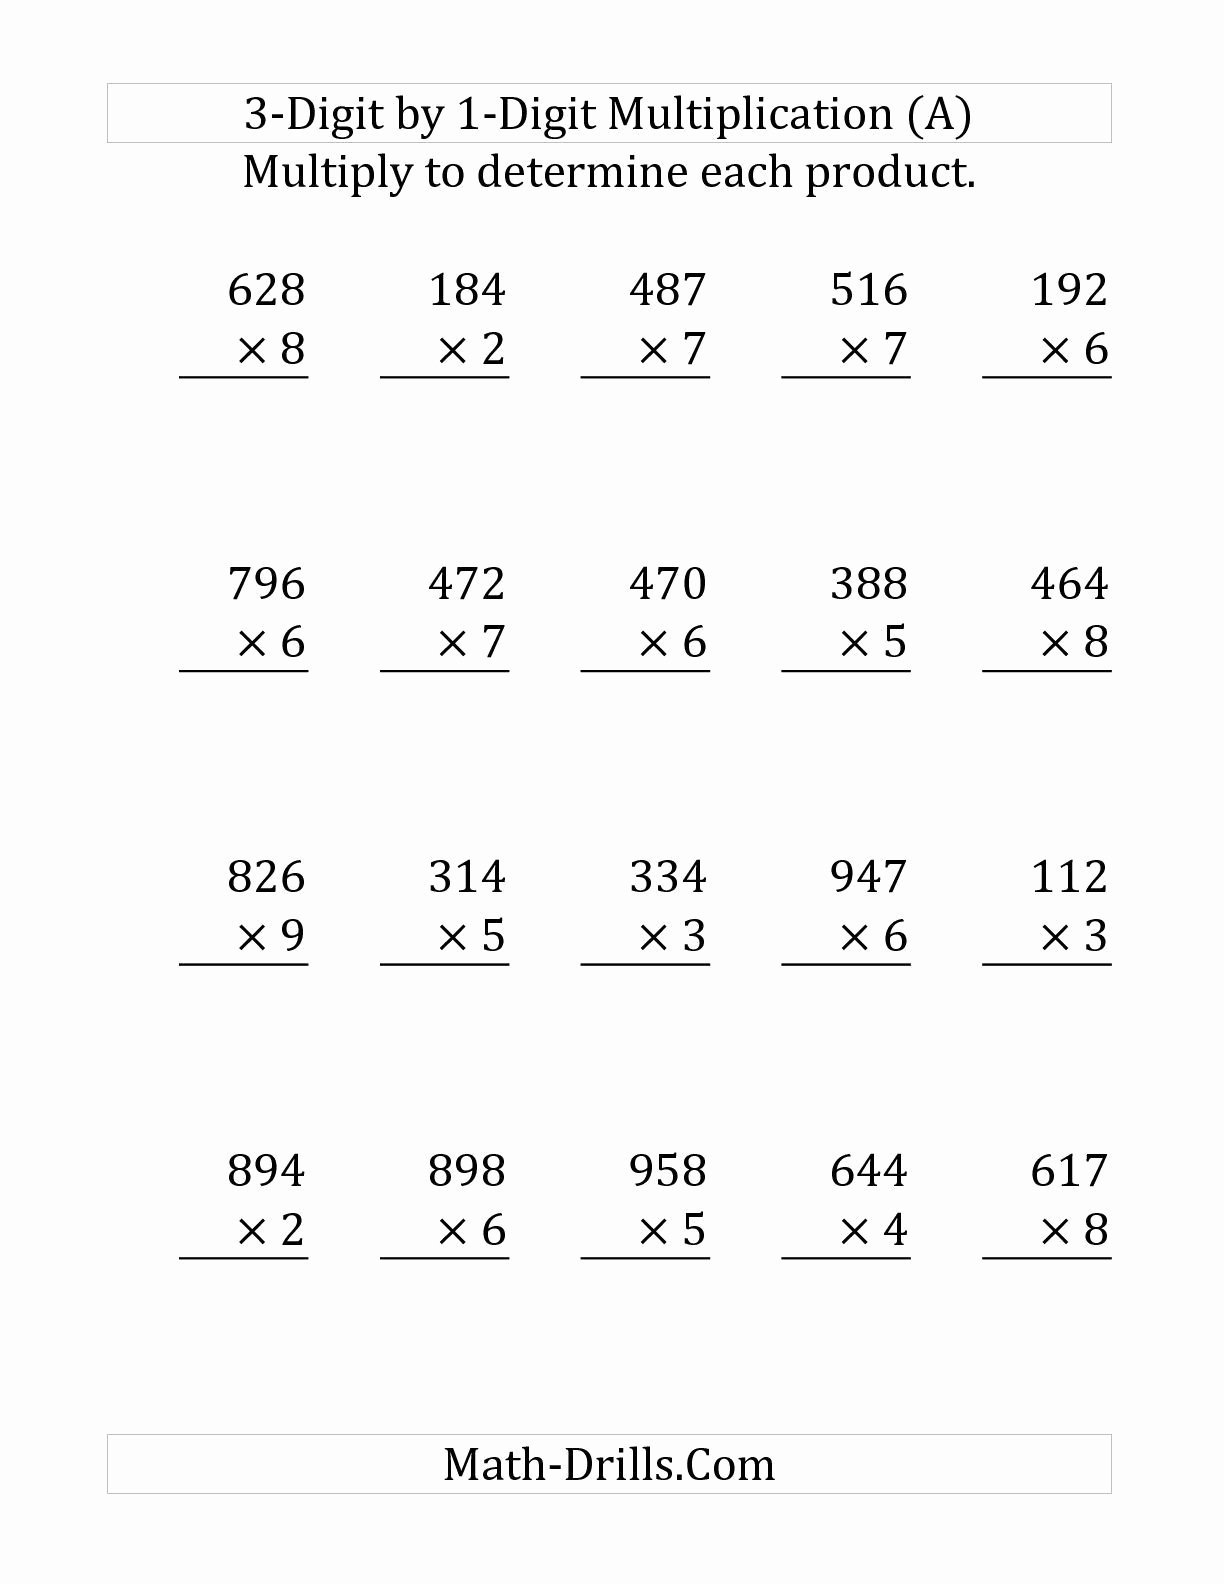 3 Digit by 3 Digit Multiplication Worksheets New the Multiplying A 3 Digit Number by A 1 Digit Number